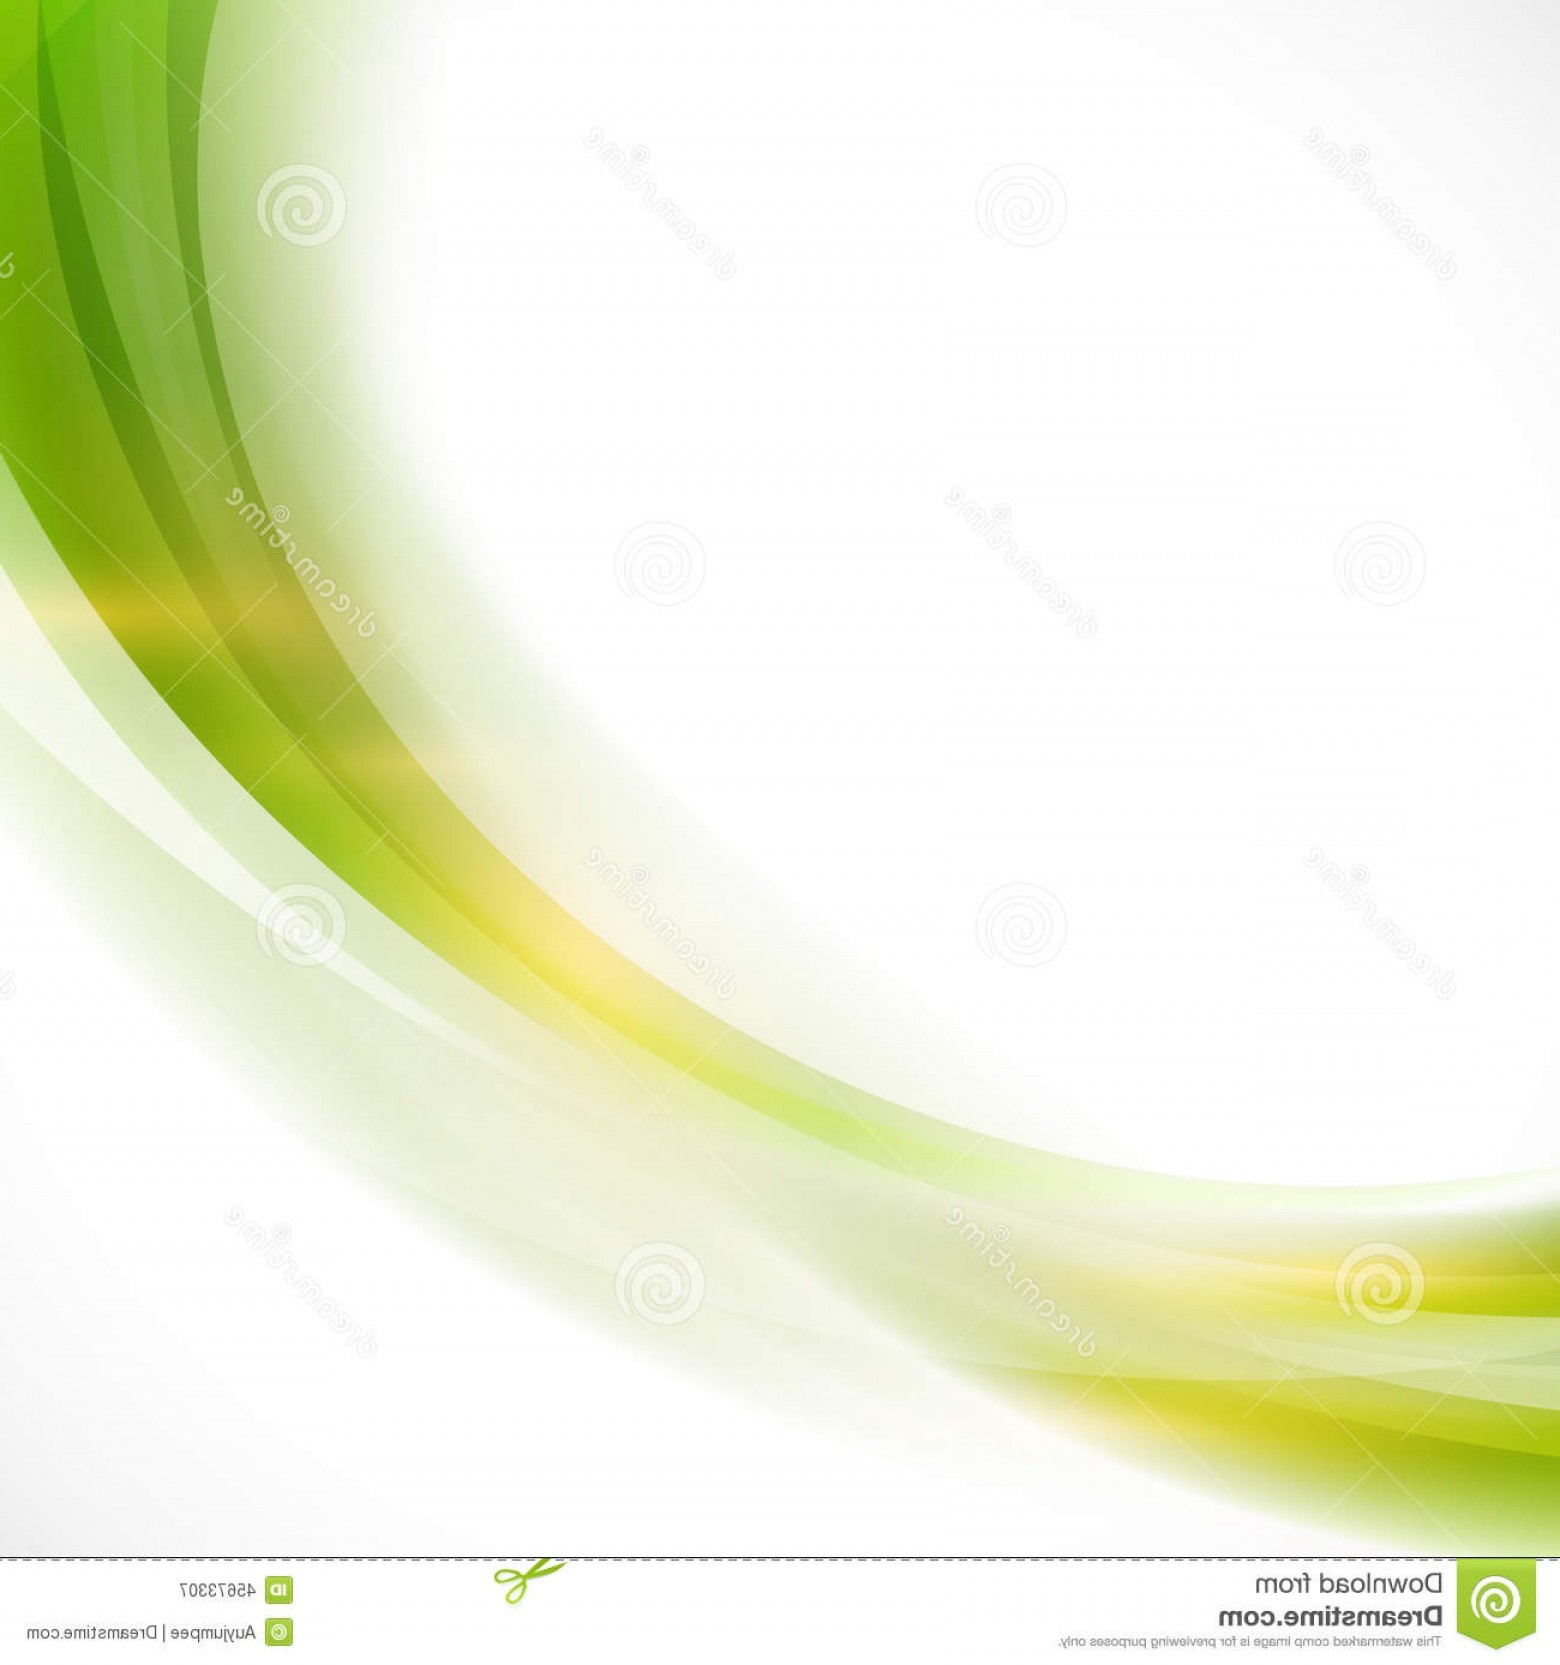 Vector Smooth Green: Stock Illustration Abstract Curve Smooth Green Flow Background Vector Illustration Image